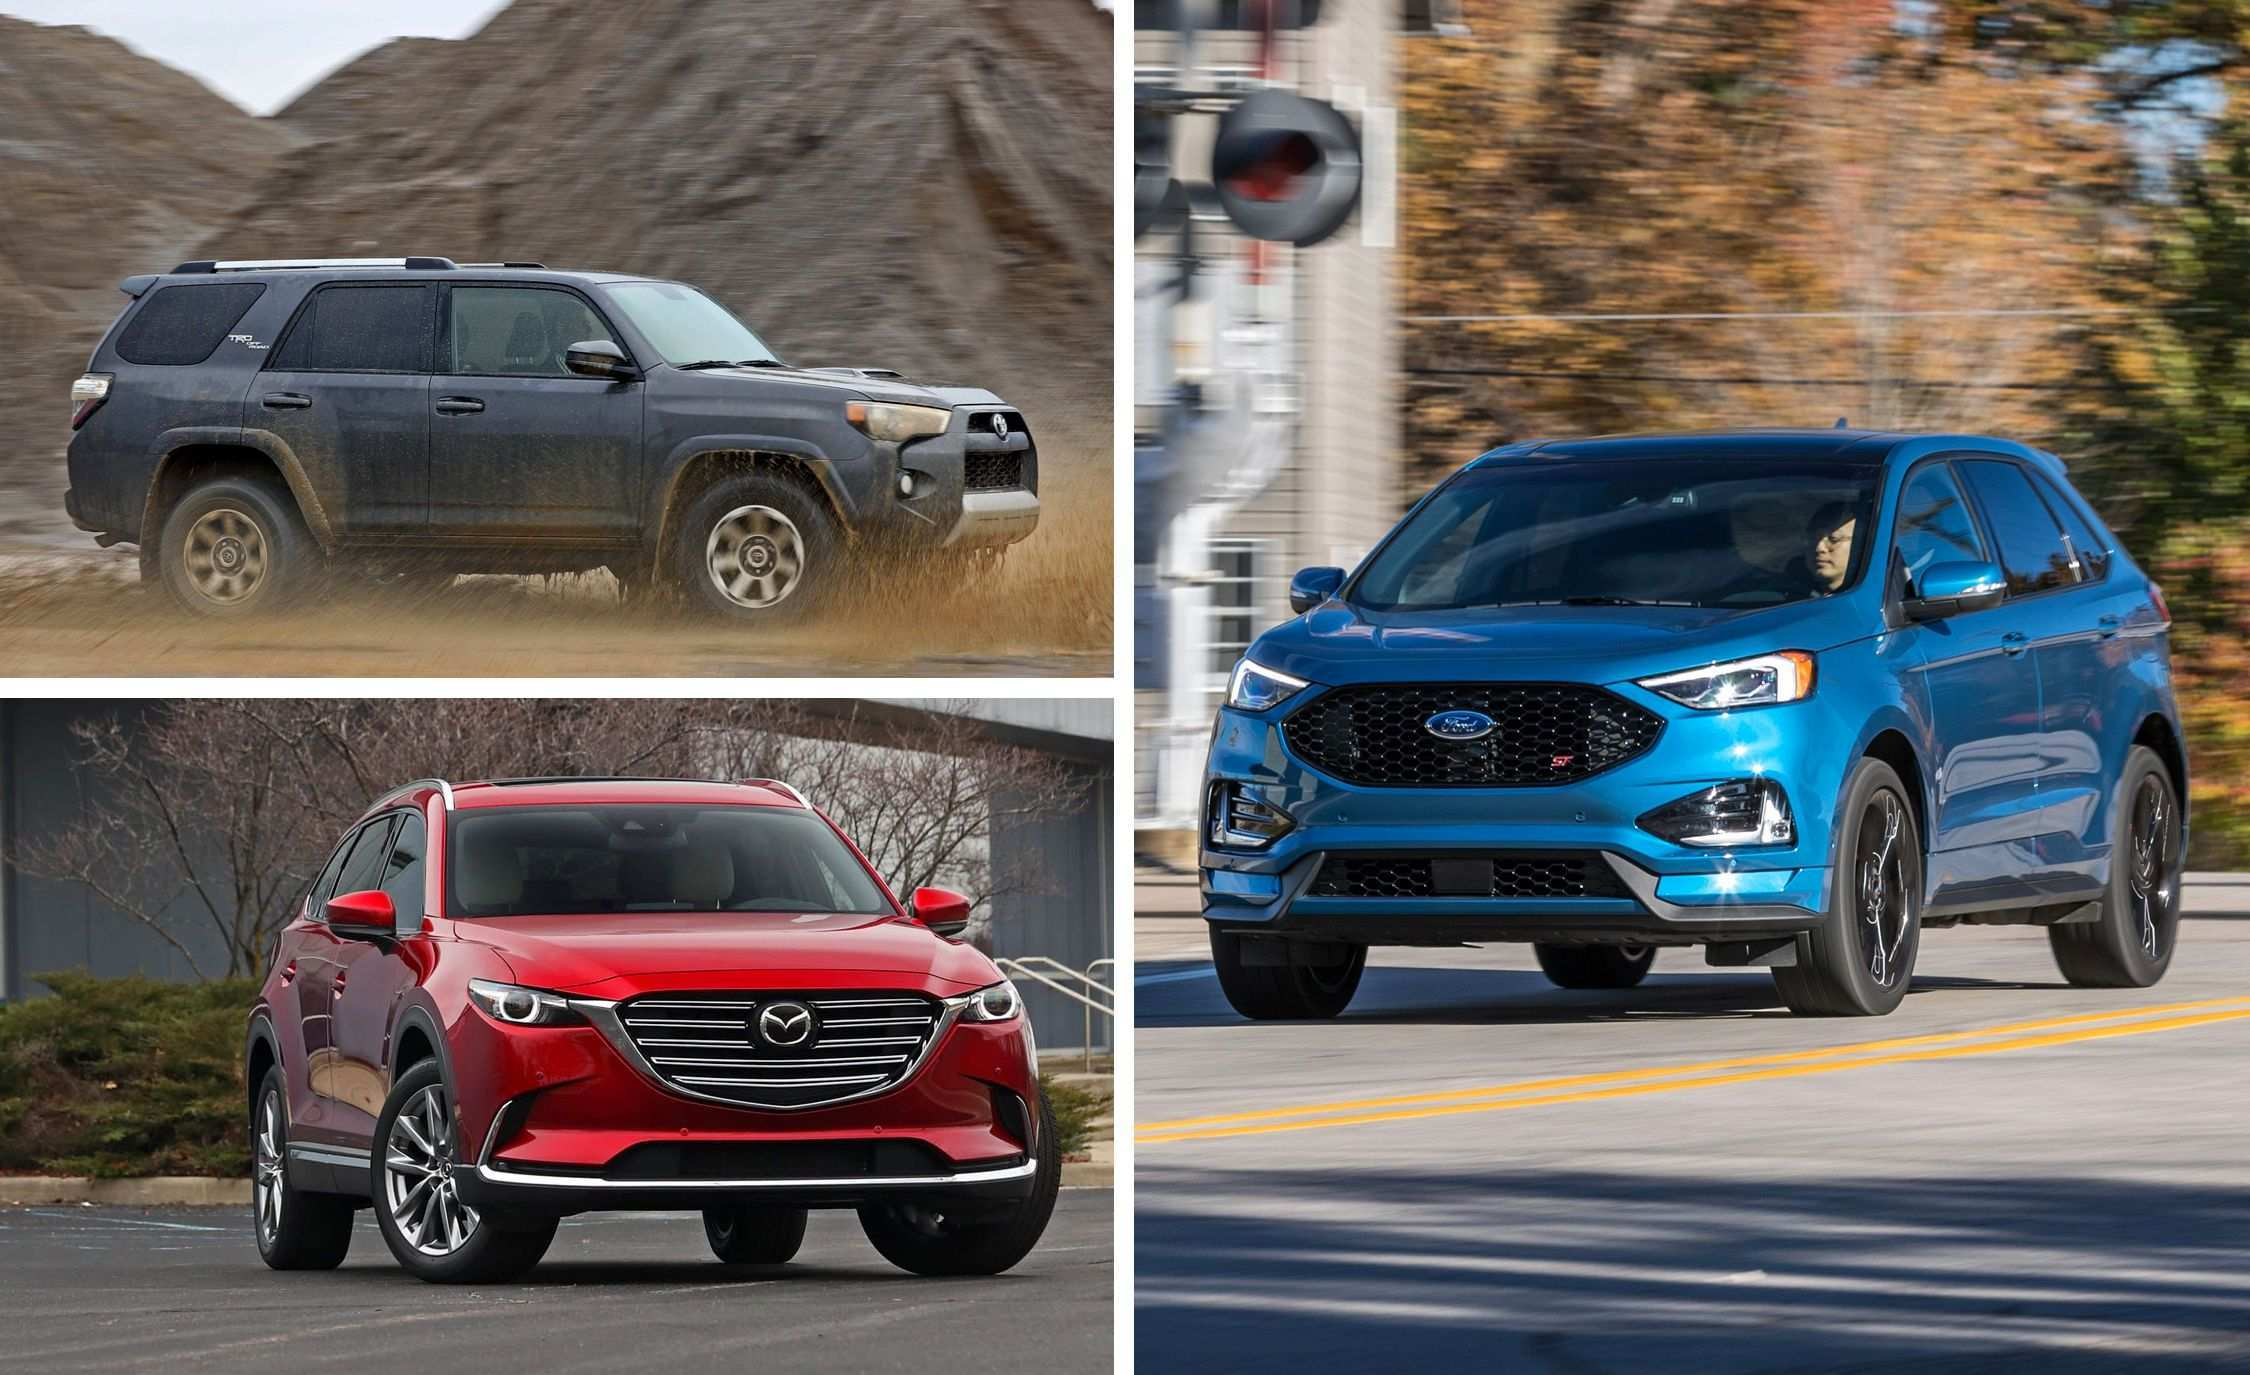 18 Great The 2019 Dodge Full Size Suv Engine New Review by The 2019 Dodge Full Size Suv Engine